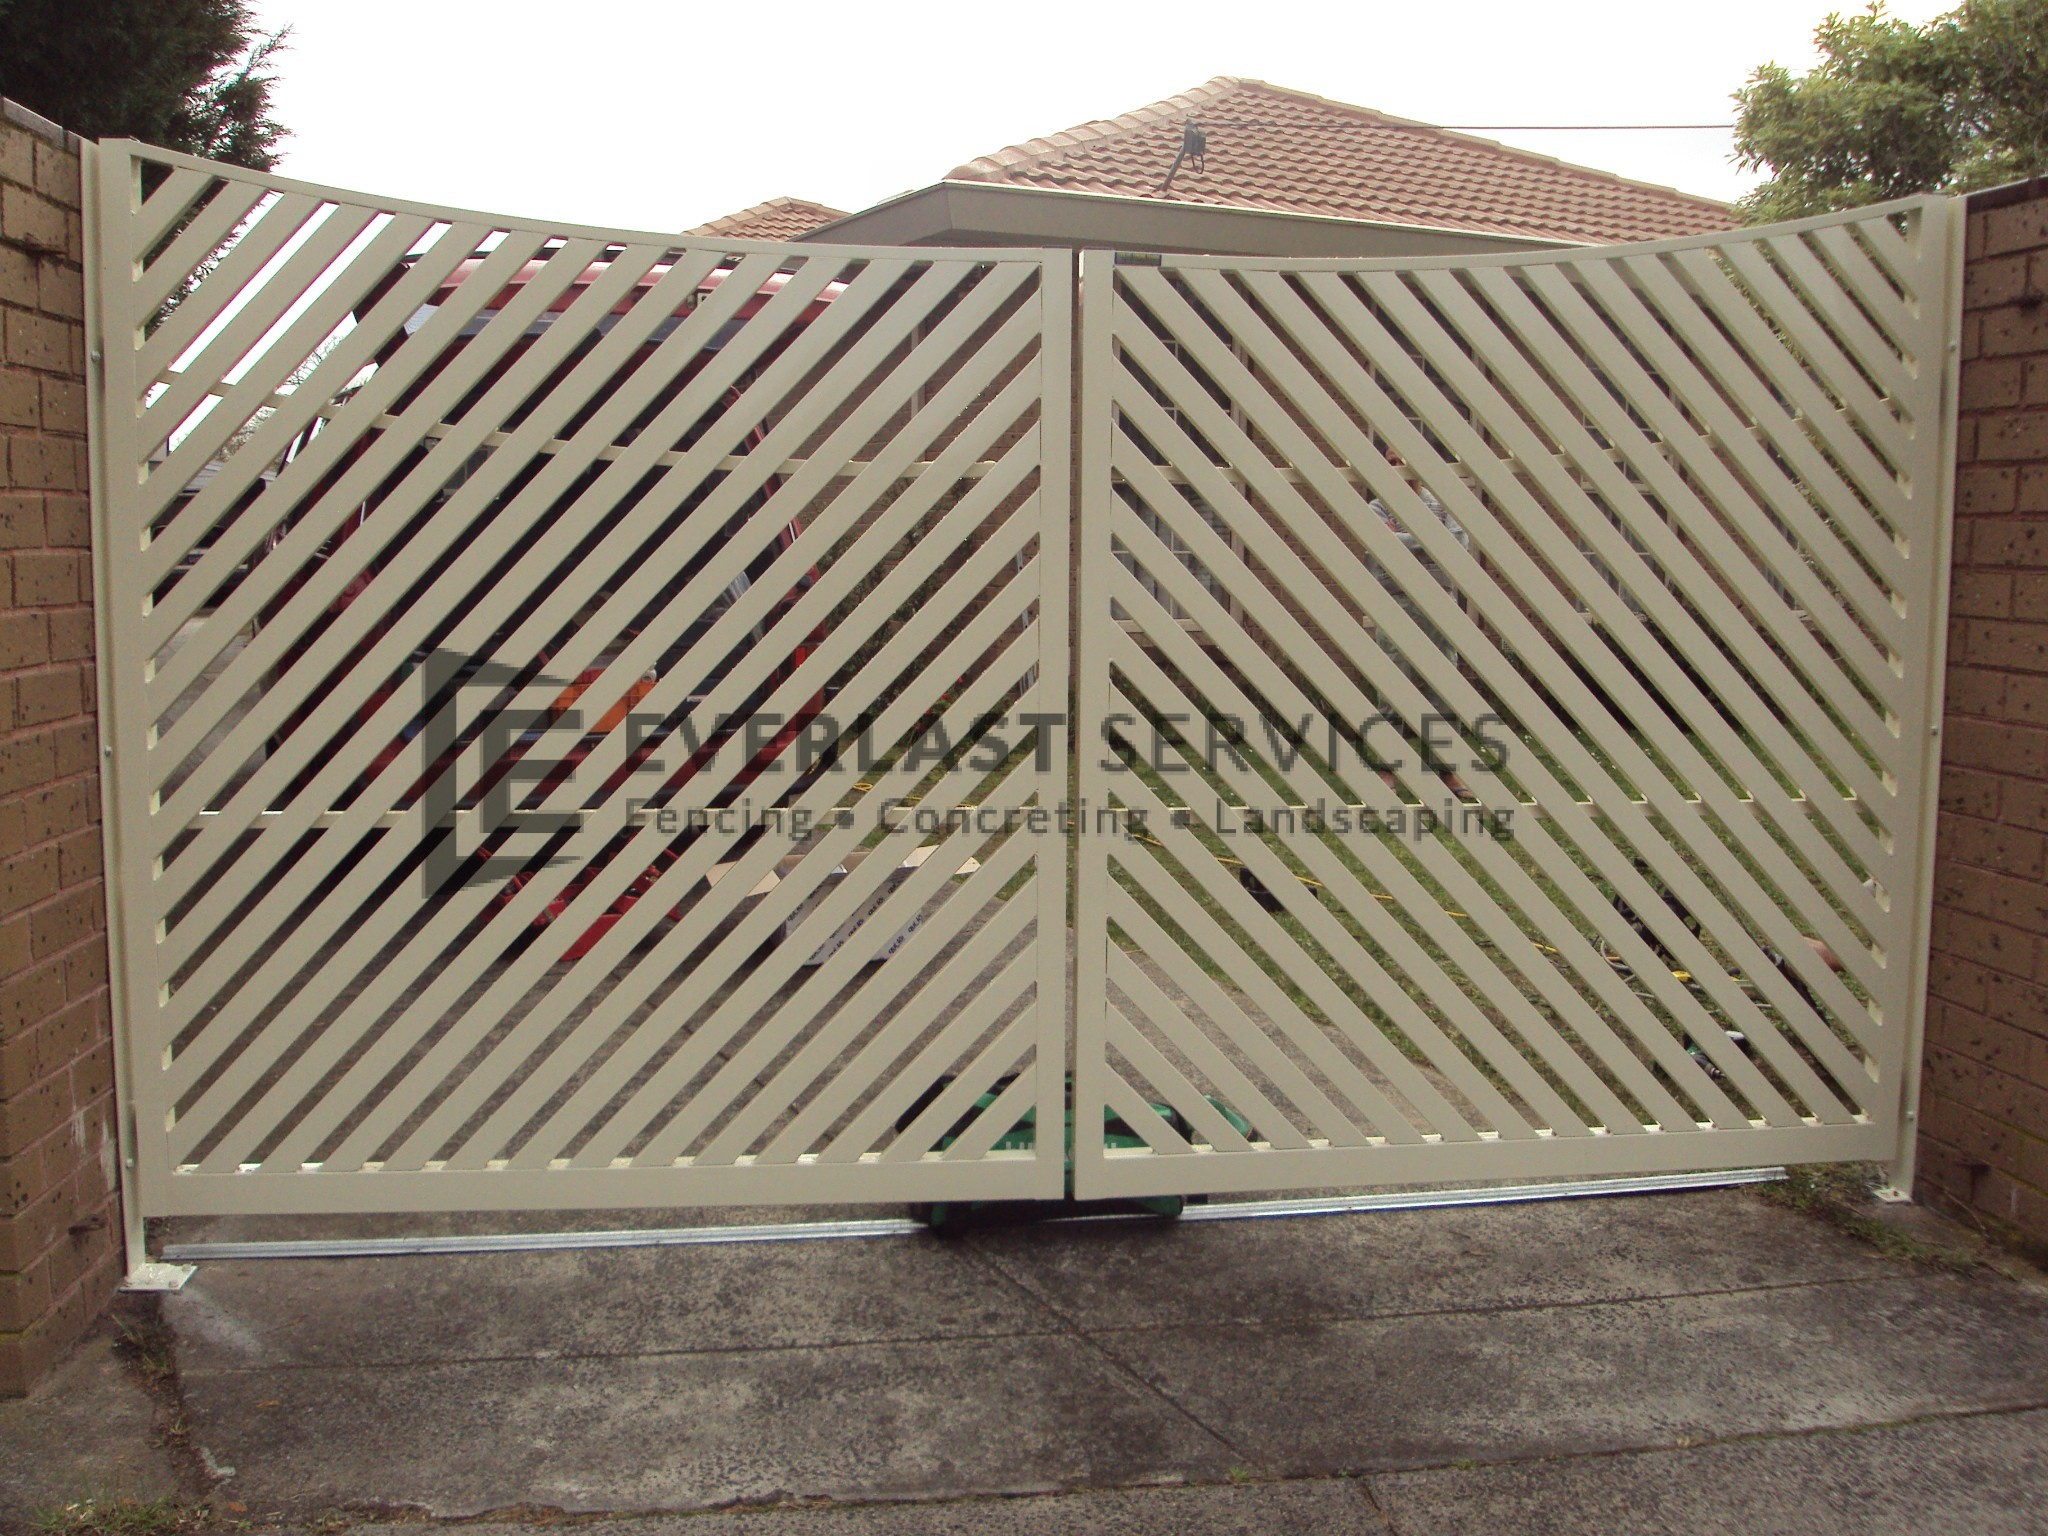 DG27 - Diagonal Steel Slats Double Gate - Werribee